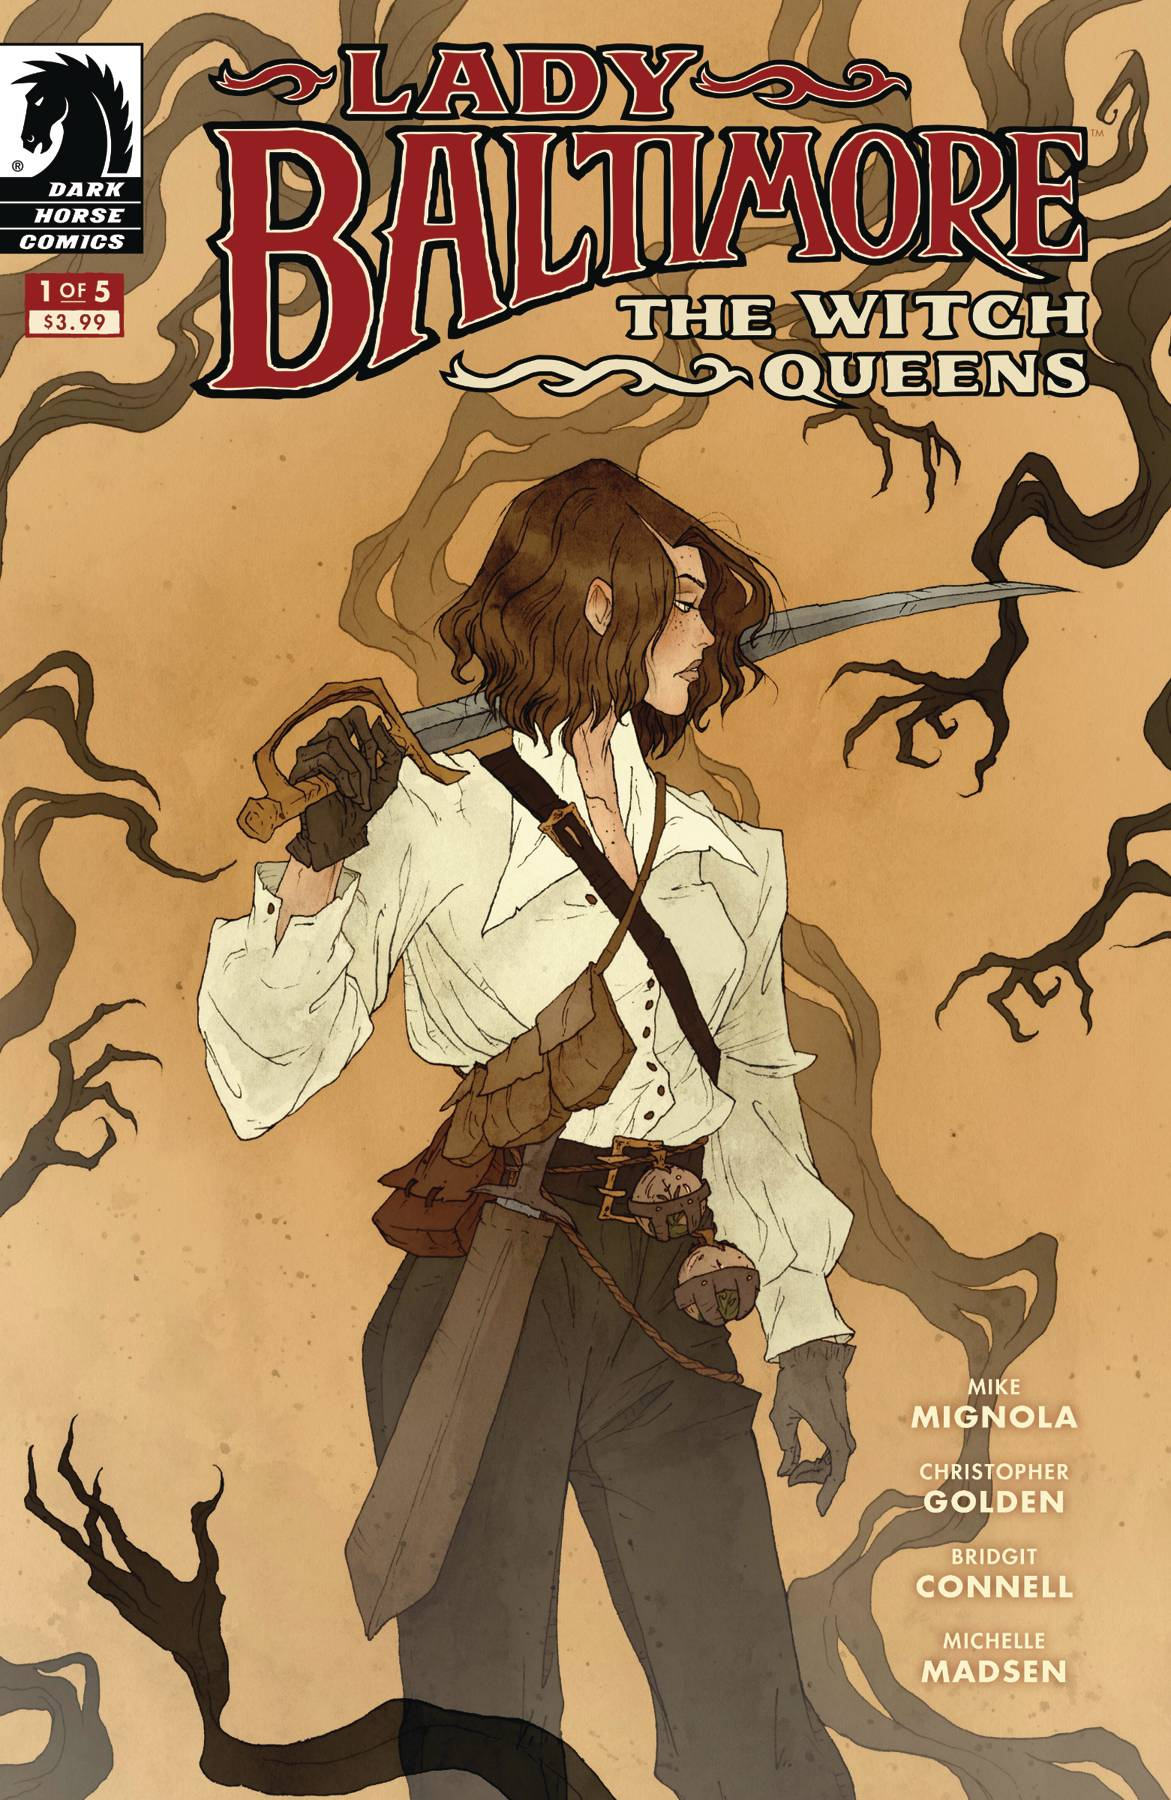 LADY BALTIMORE WITCH QUEENS #1 (OF 5) PRE-ORDER